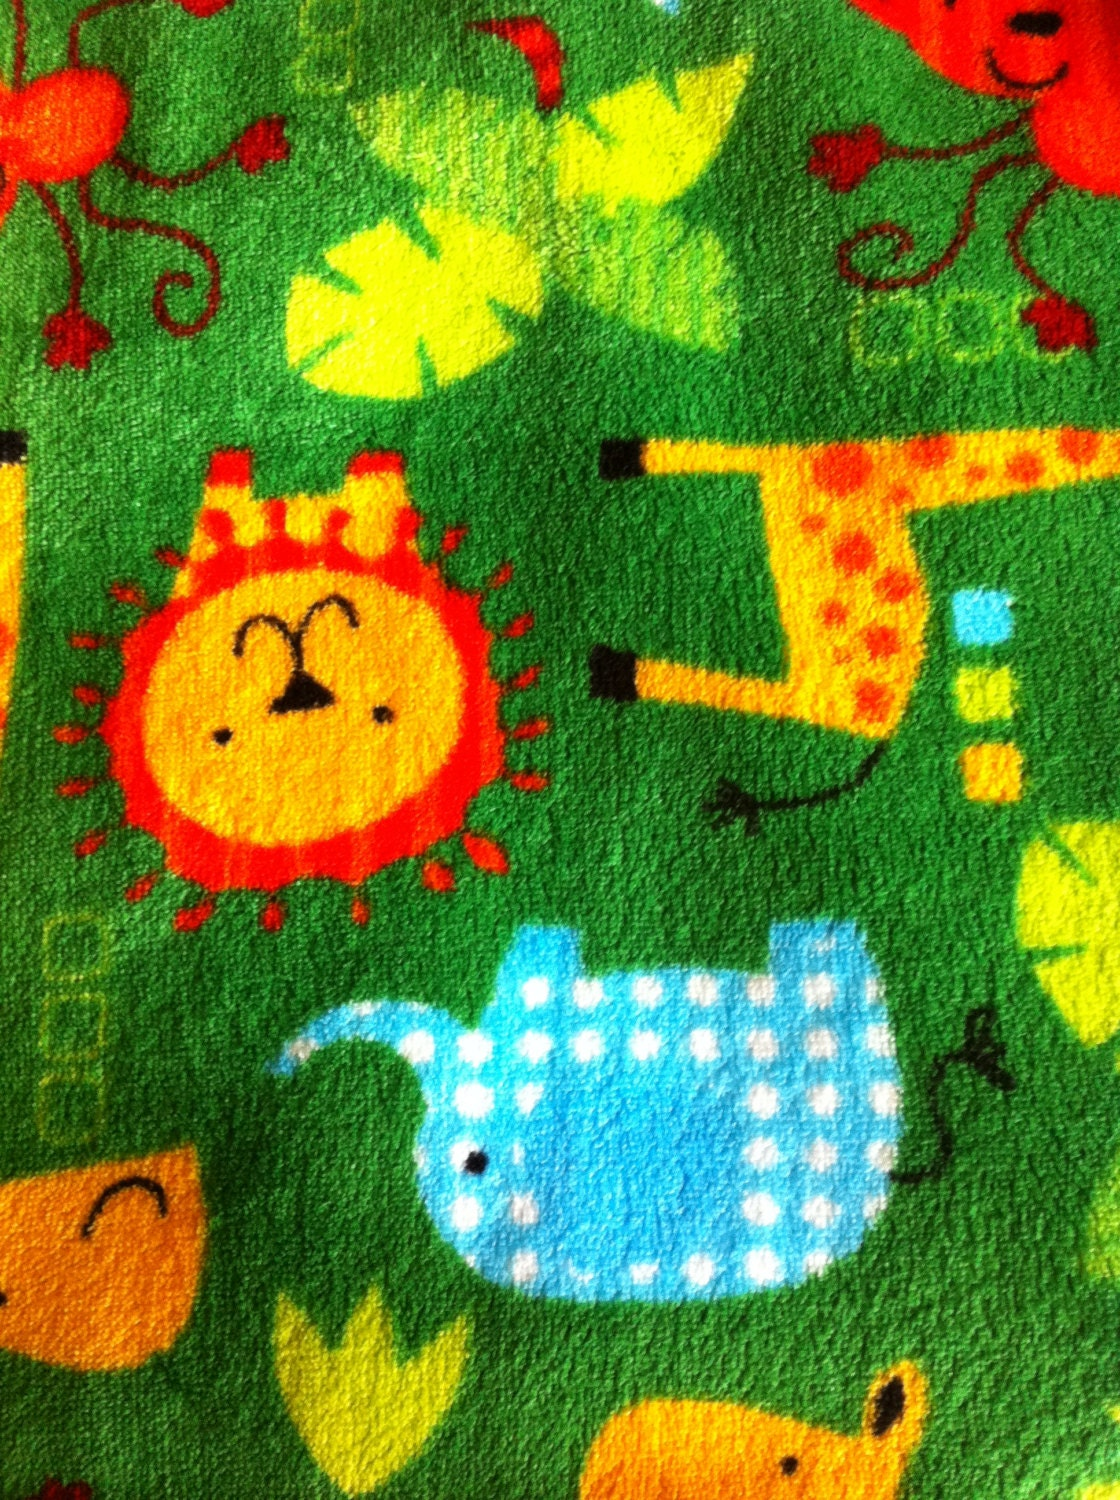 cuddle aminal print fabric fleece lions elephants moneys